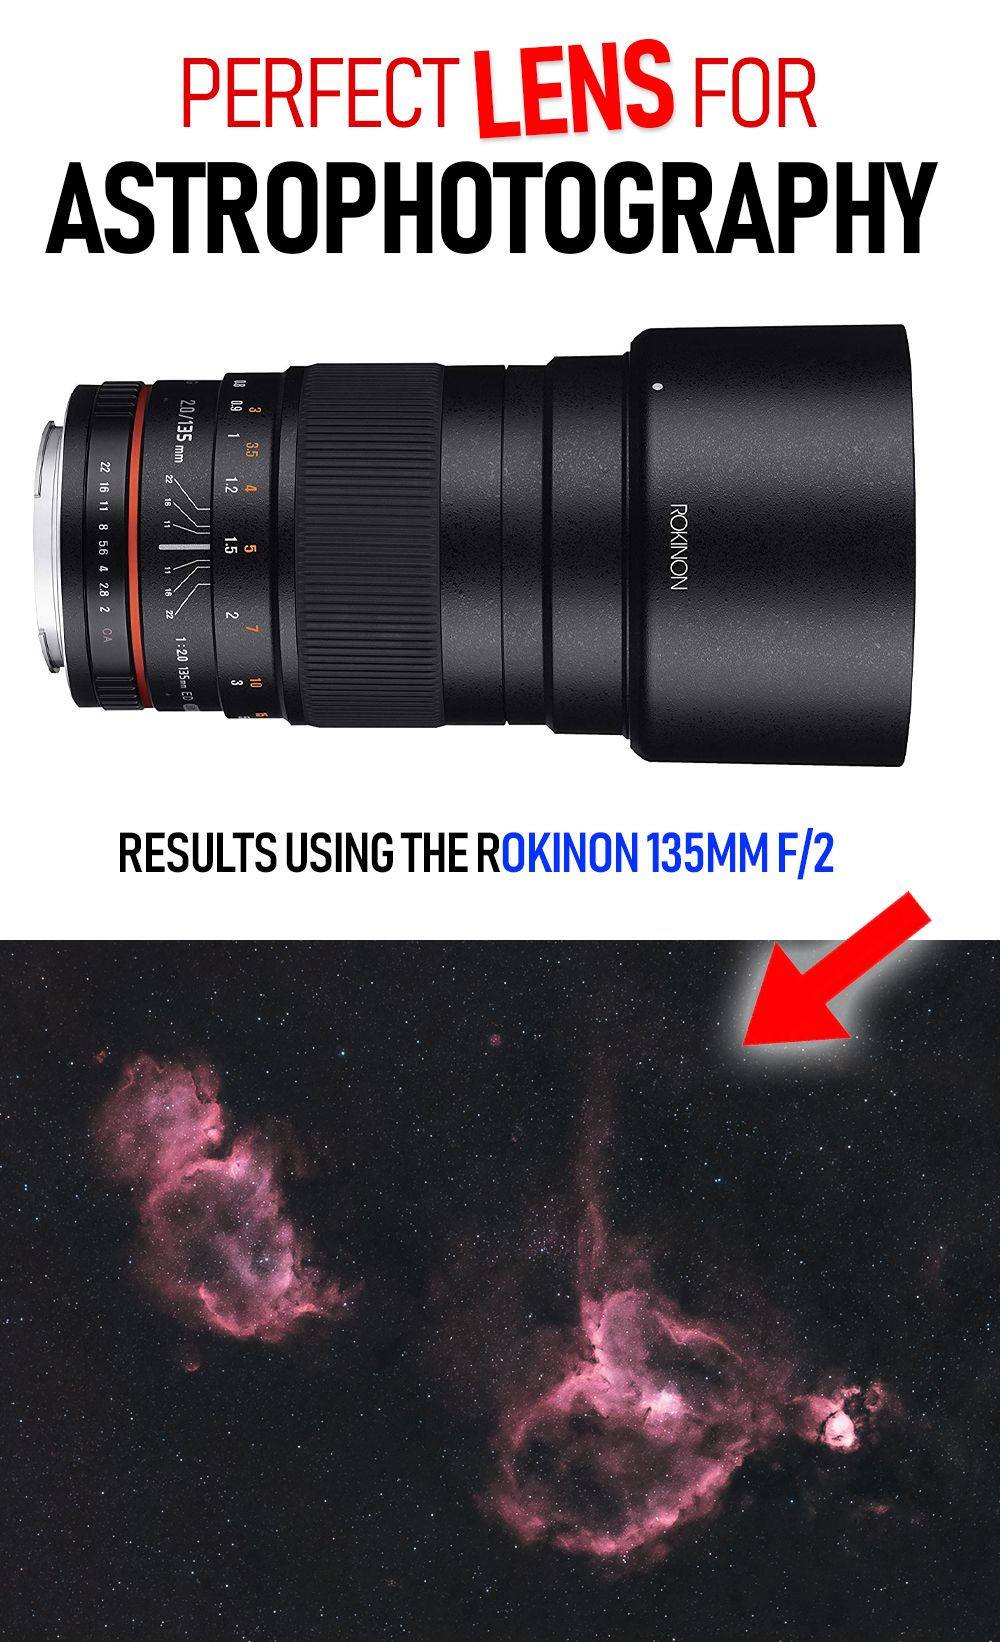 The Rokinon 135mm F 2 Was Built For Astrophotography Astrophotography Nikon D5200 Photography Camera Lens